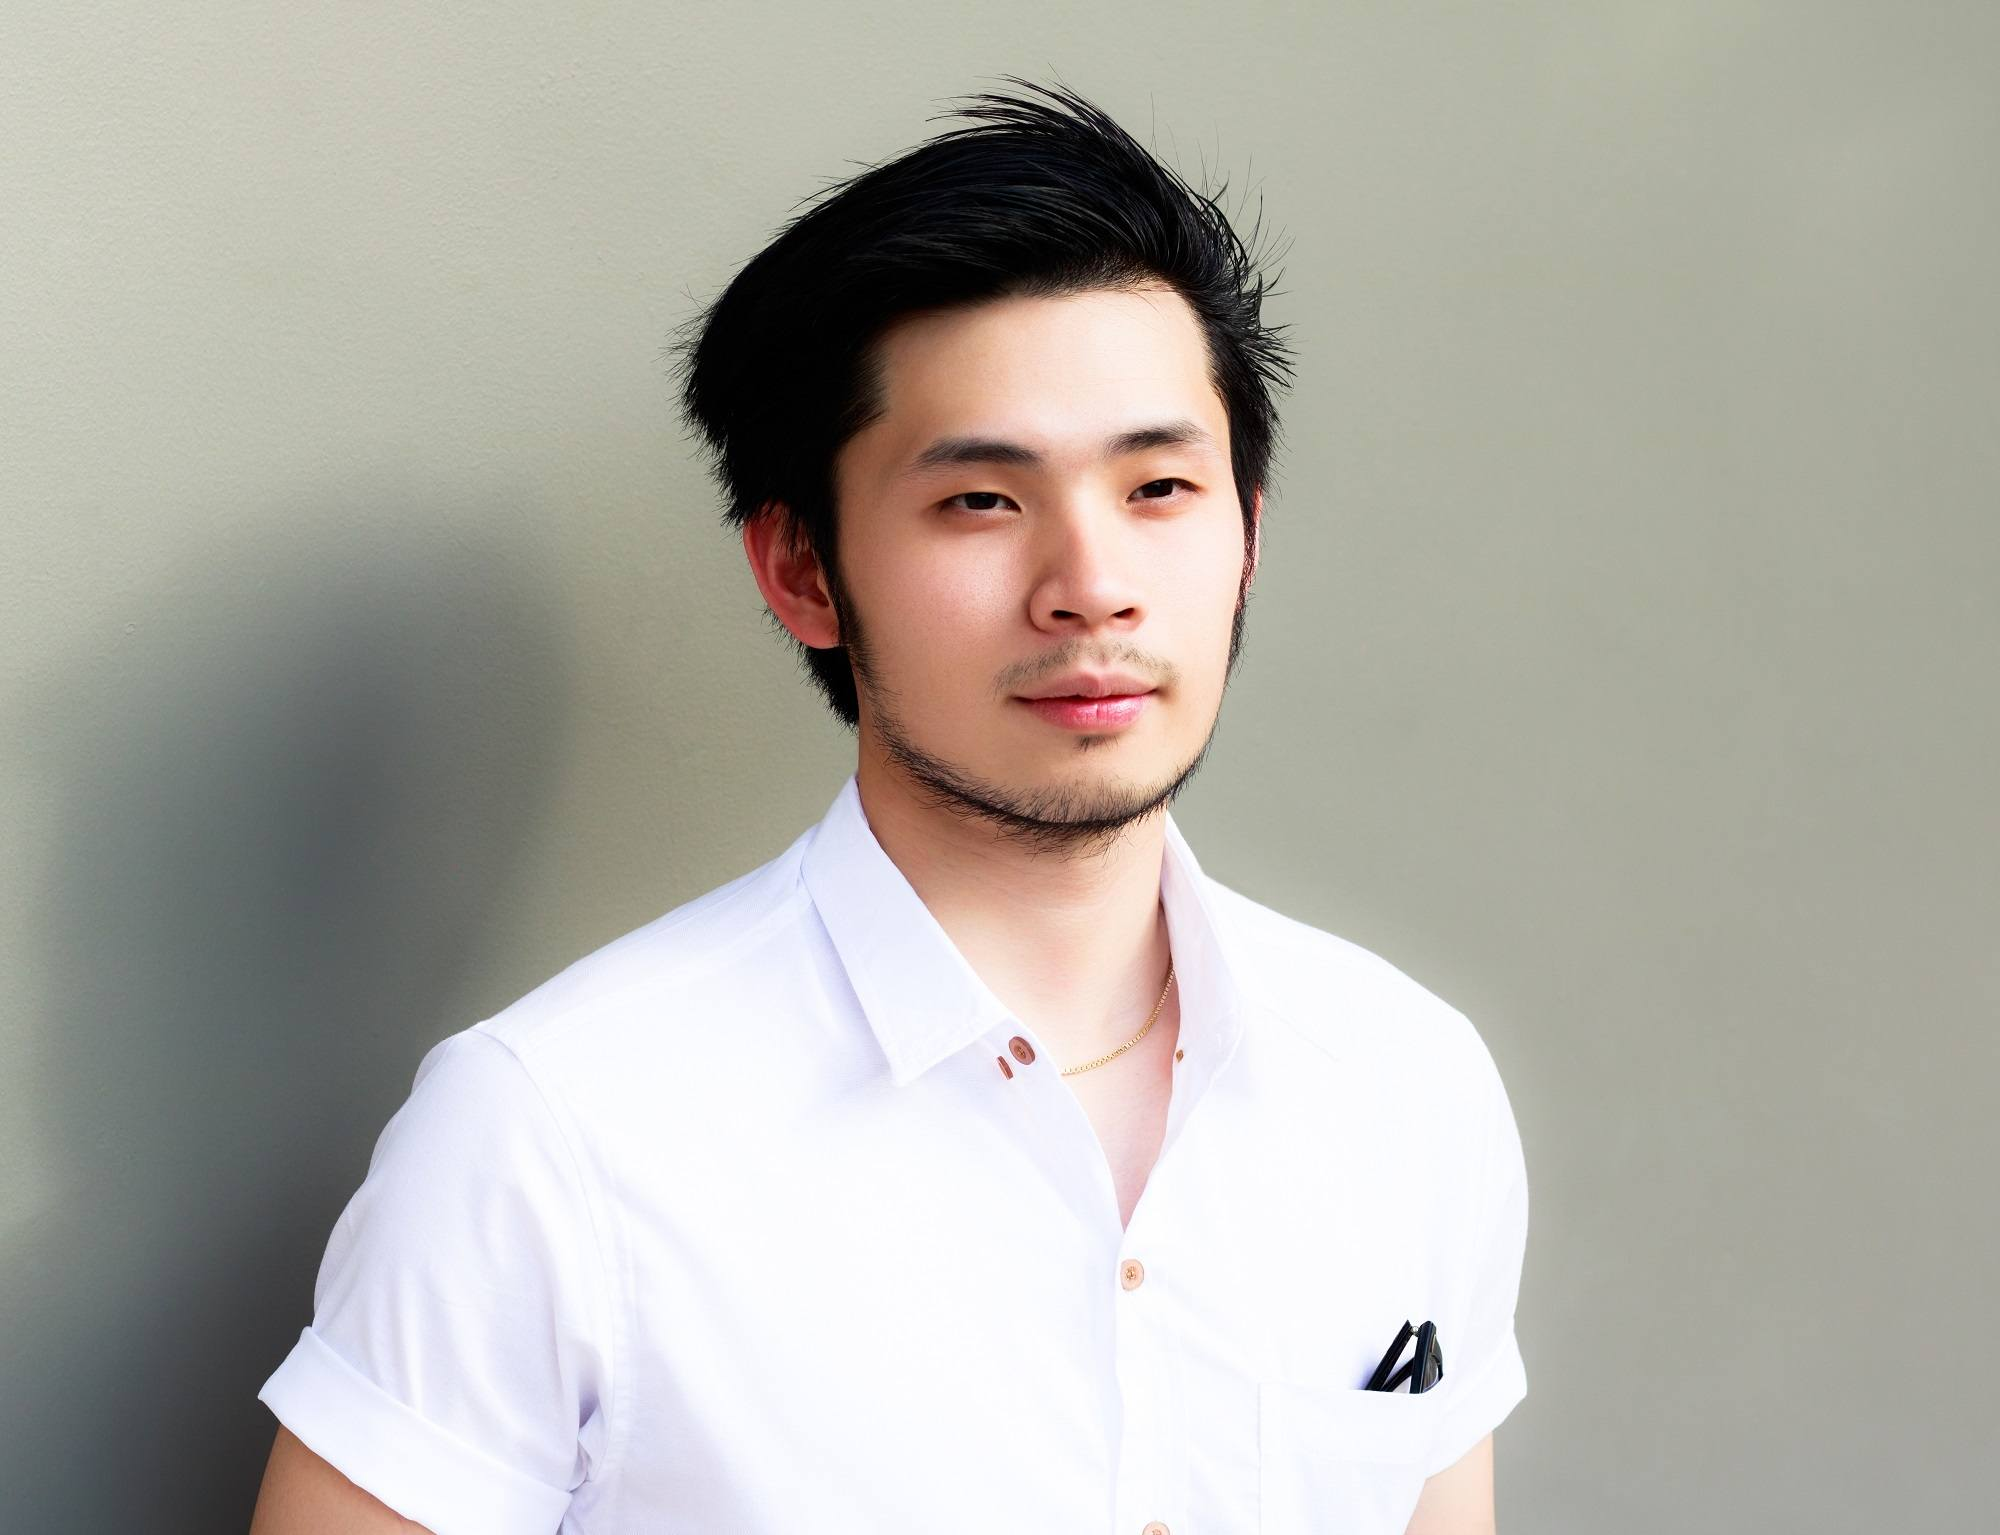 Asian hairstyles men: Asian man with comb over hairstyle